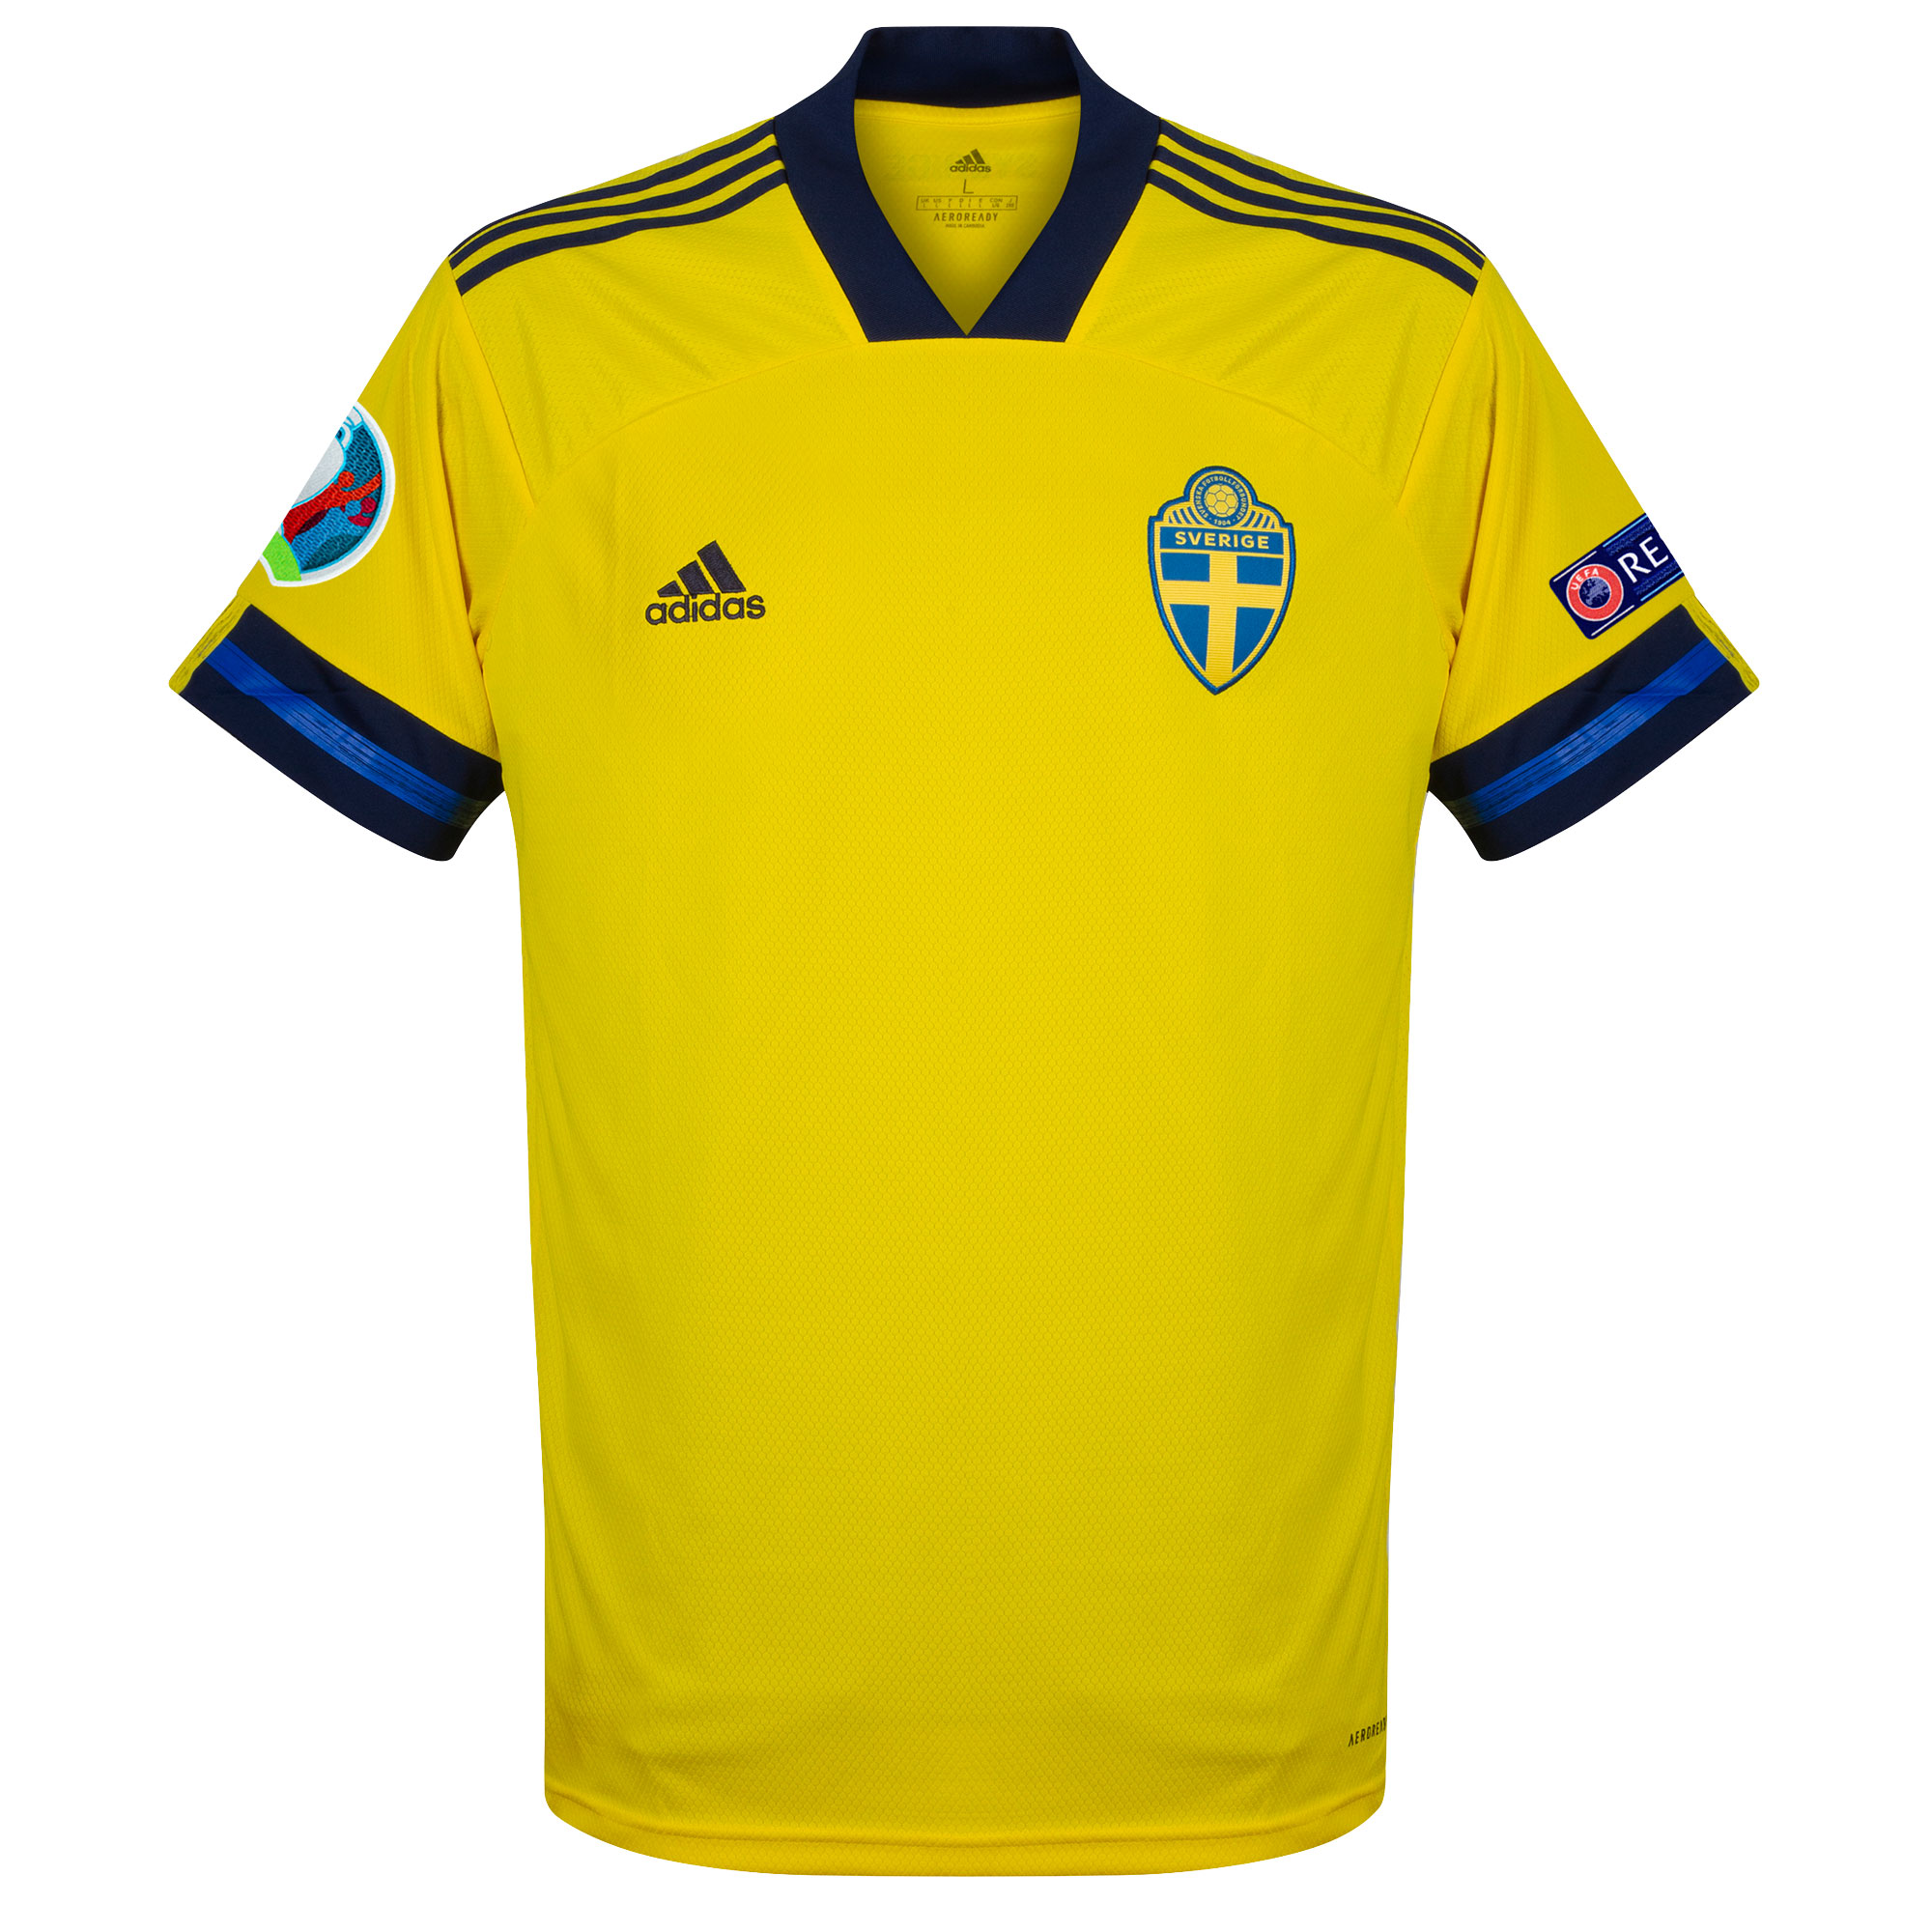 adidas Sweden Home Shirt inc. Official Euro 2020 & Respect Patches